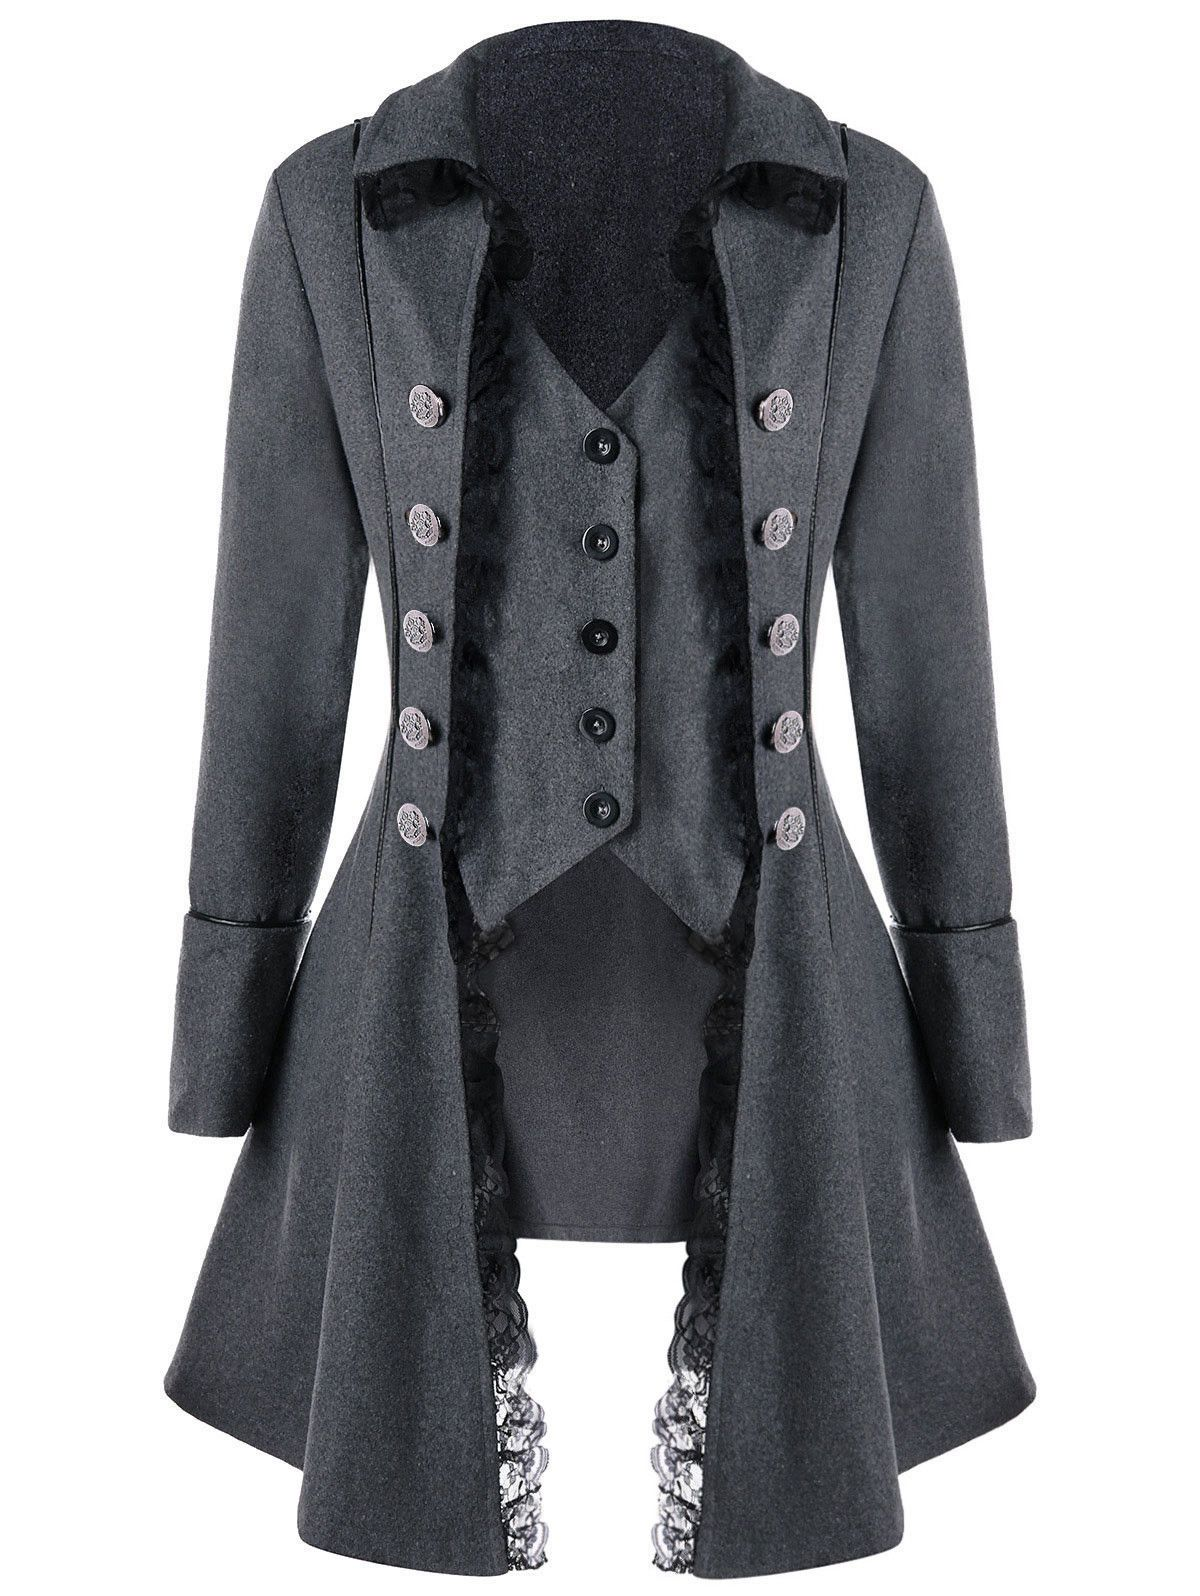 e51fae9a4c78 Womens Victorian Steampunk Gothic Coat Retro Tailcoat Button Up cosplay  Jacket | eBay